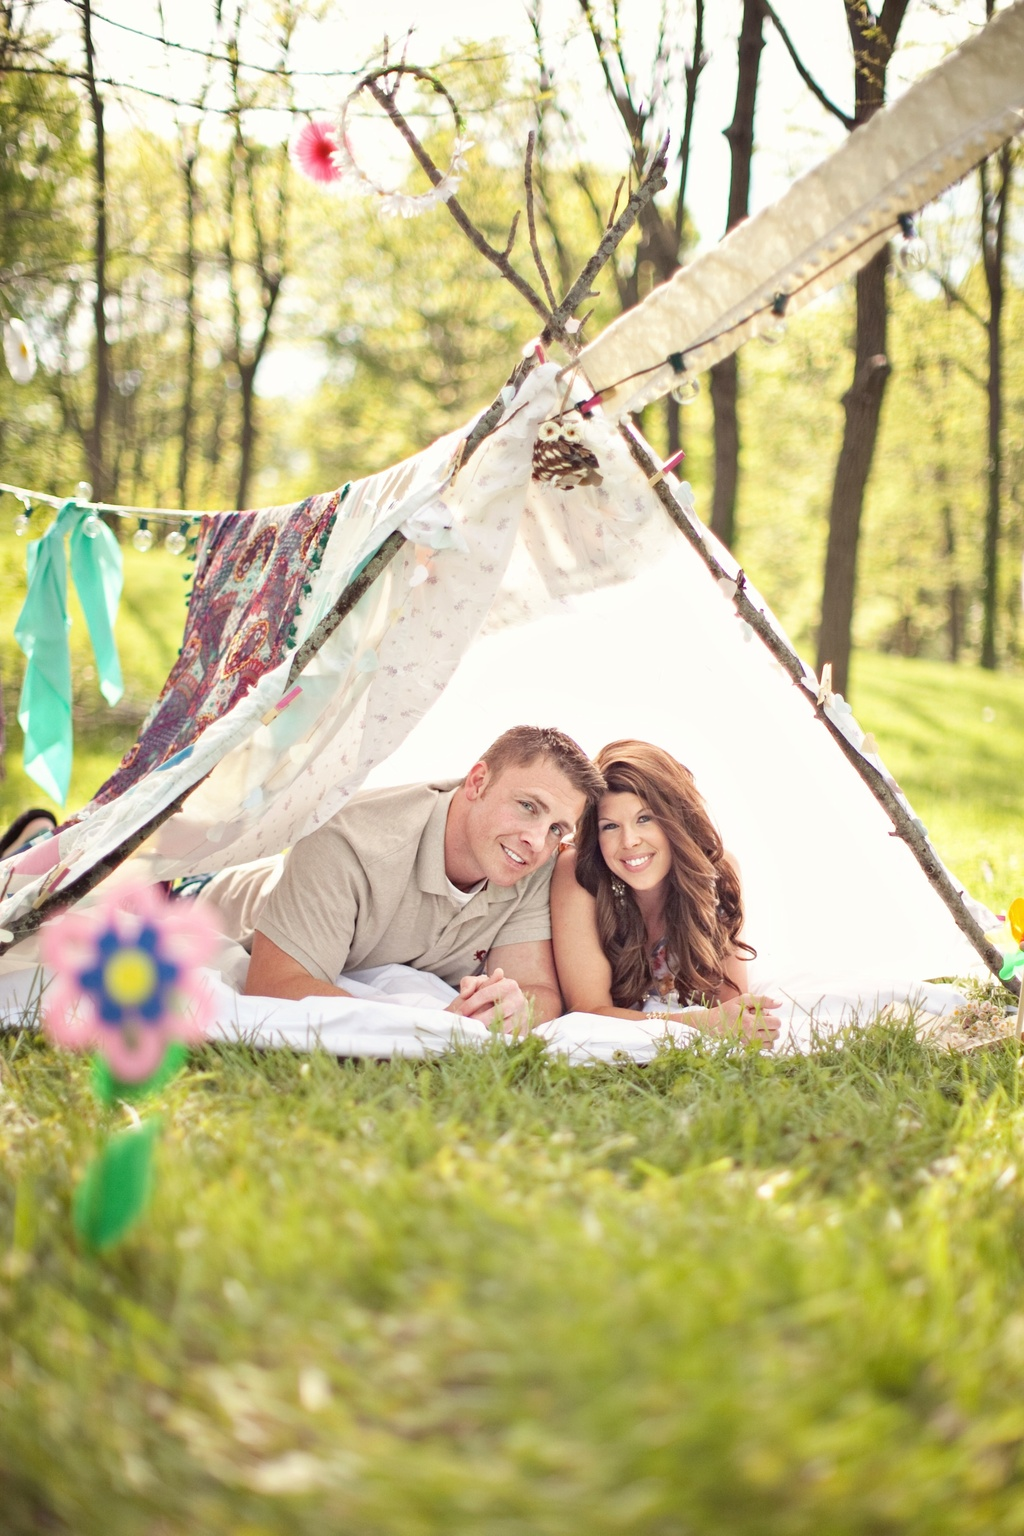 Wedding-photography-unique-engagement-session-outdoors-rustic-romance-bride-groom-in-teepee.full